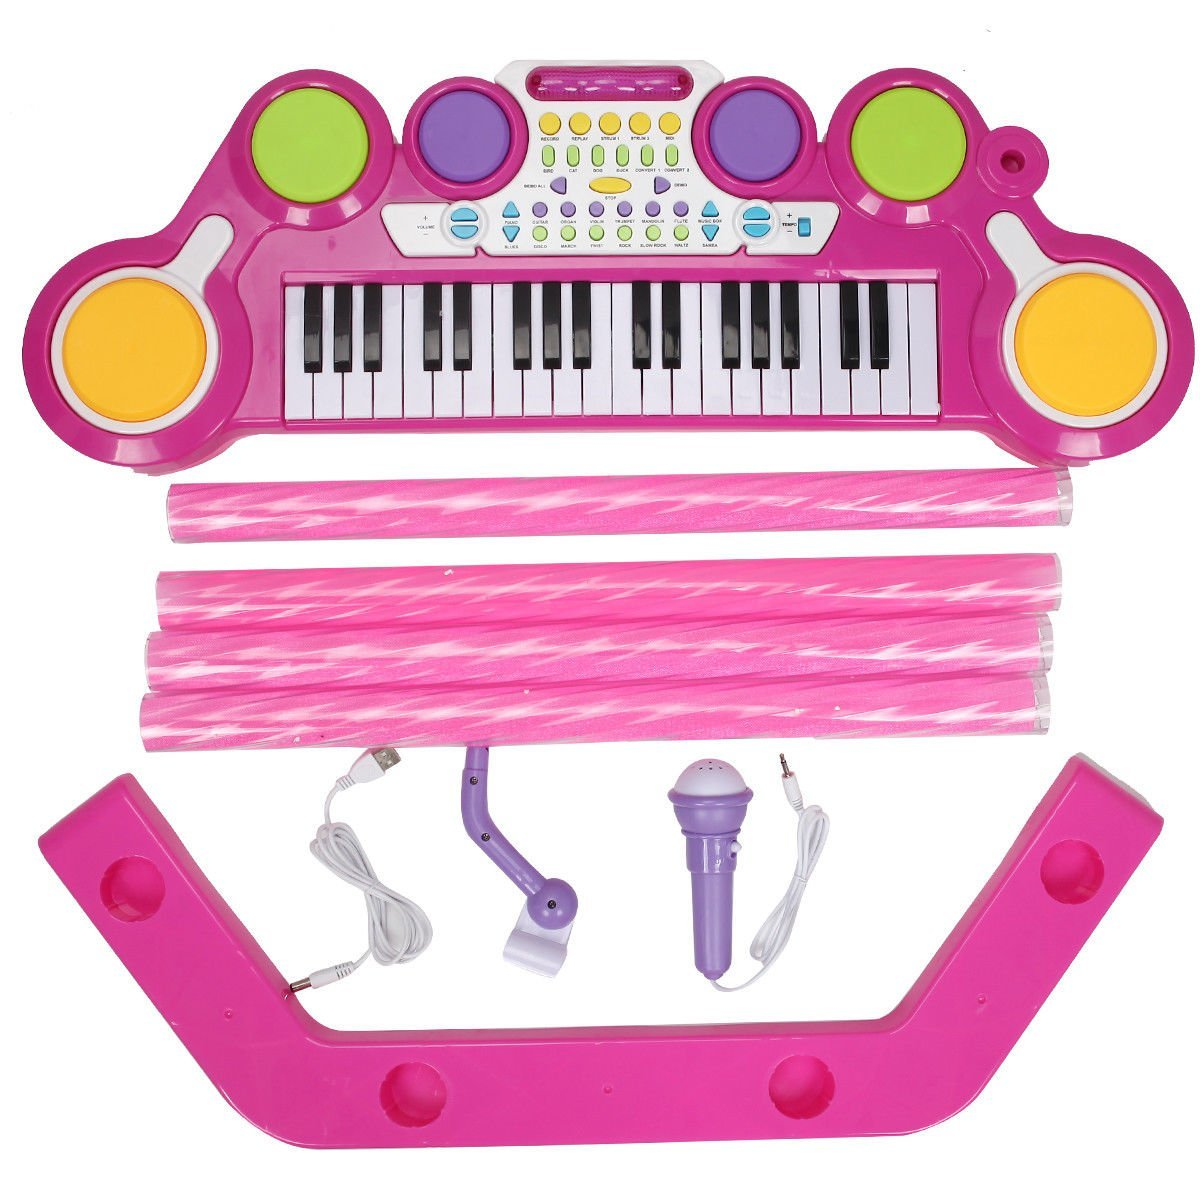 Costzon 2 In 1 Electronic Keyboard and Drum Musical 37-Key Toy Electronic Organ Piano and Drum with Microphone and Flashing Legs (Pink)6